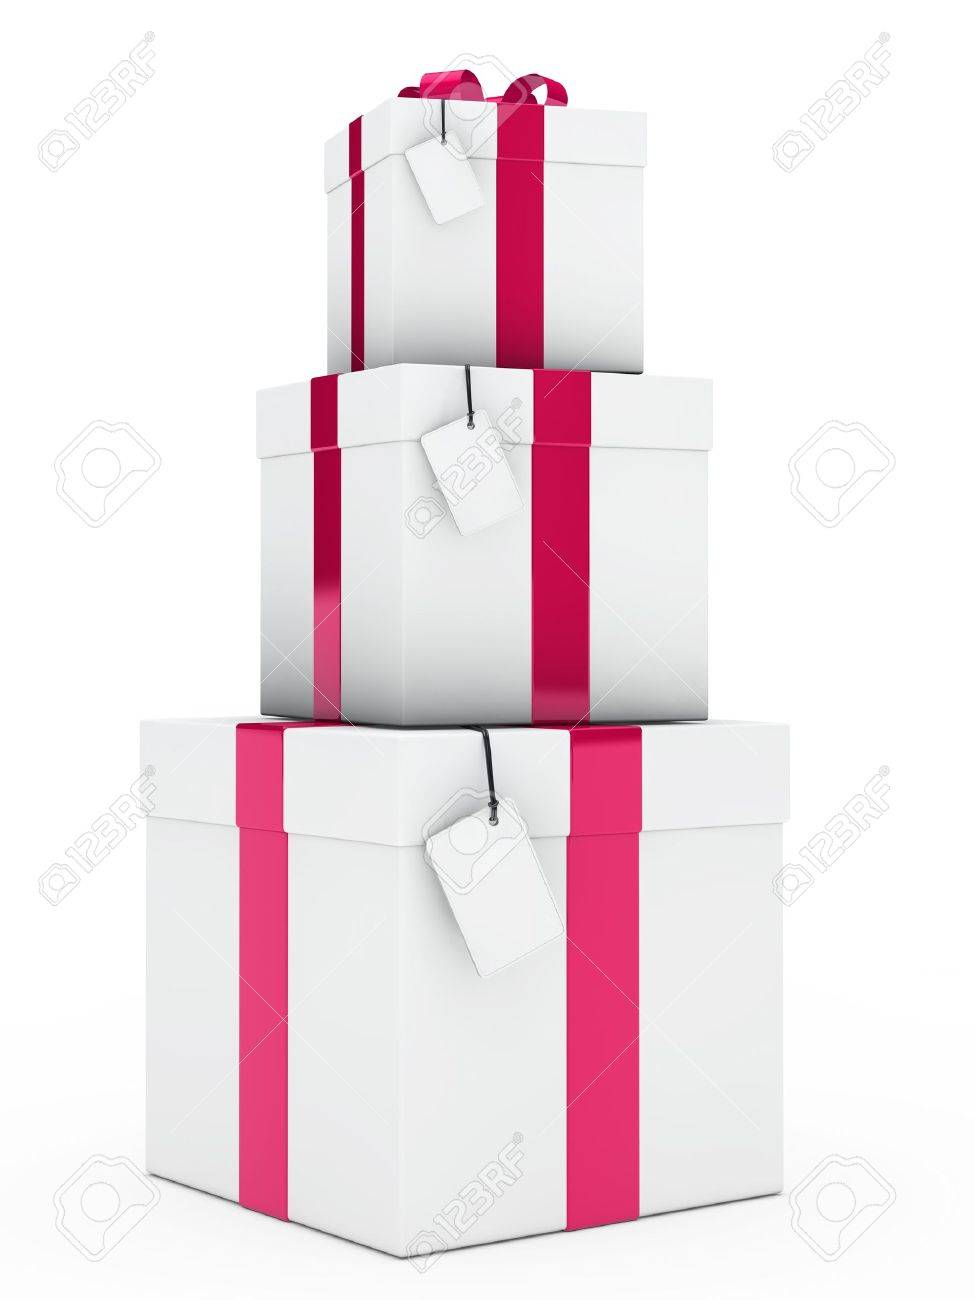 Christmas Three Gift Boxes Pink White Stack Stock Photo, Picture And ...